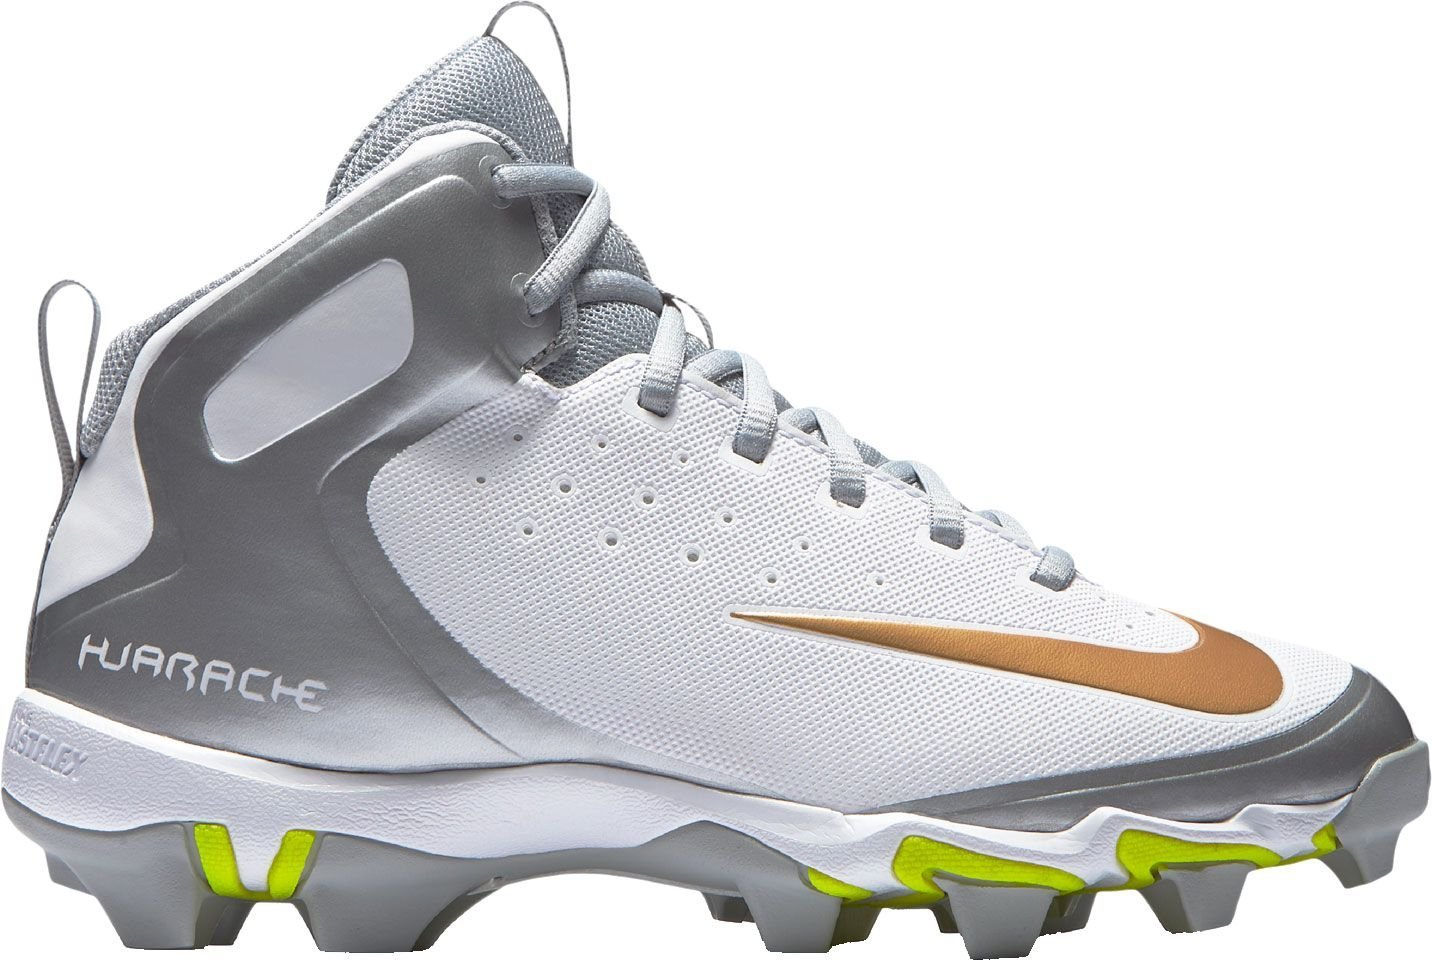 10 Best Youth Baseball Cleats: Compare